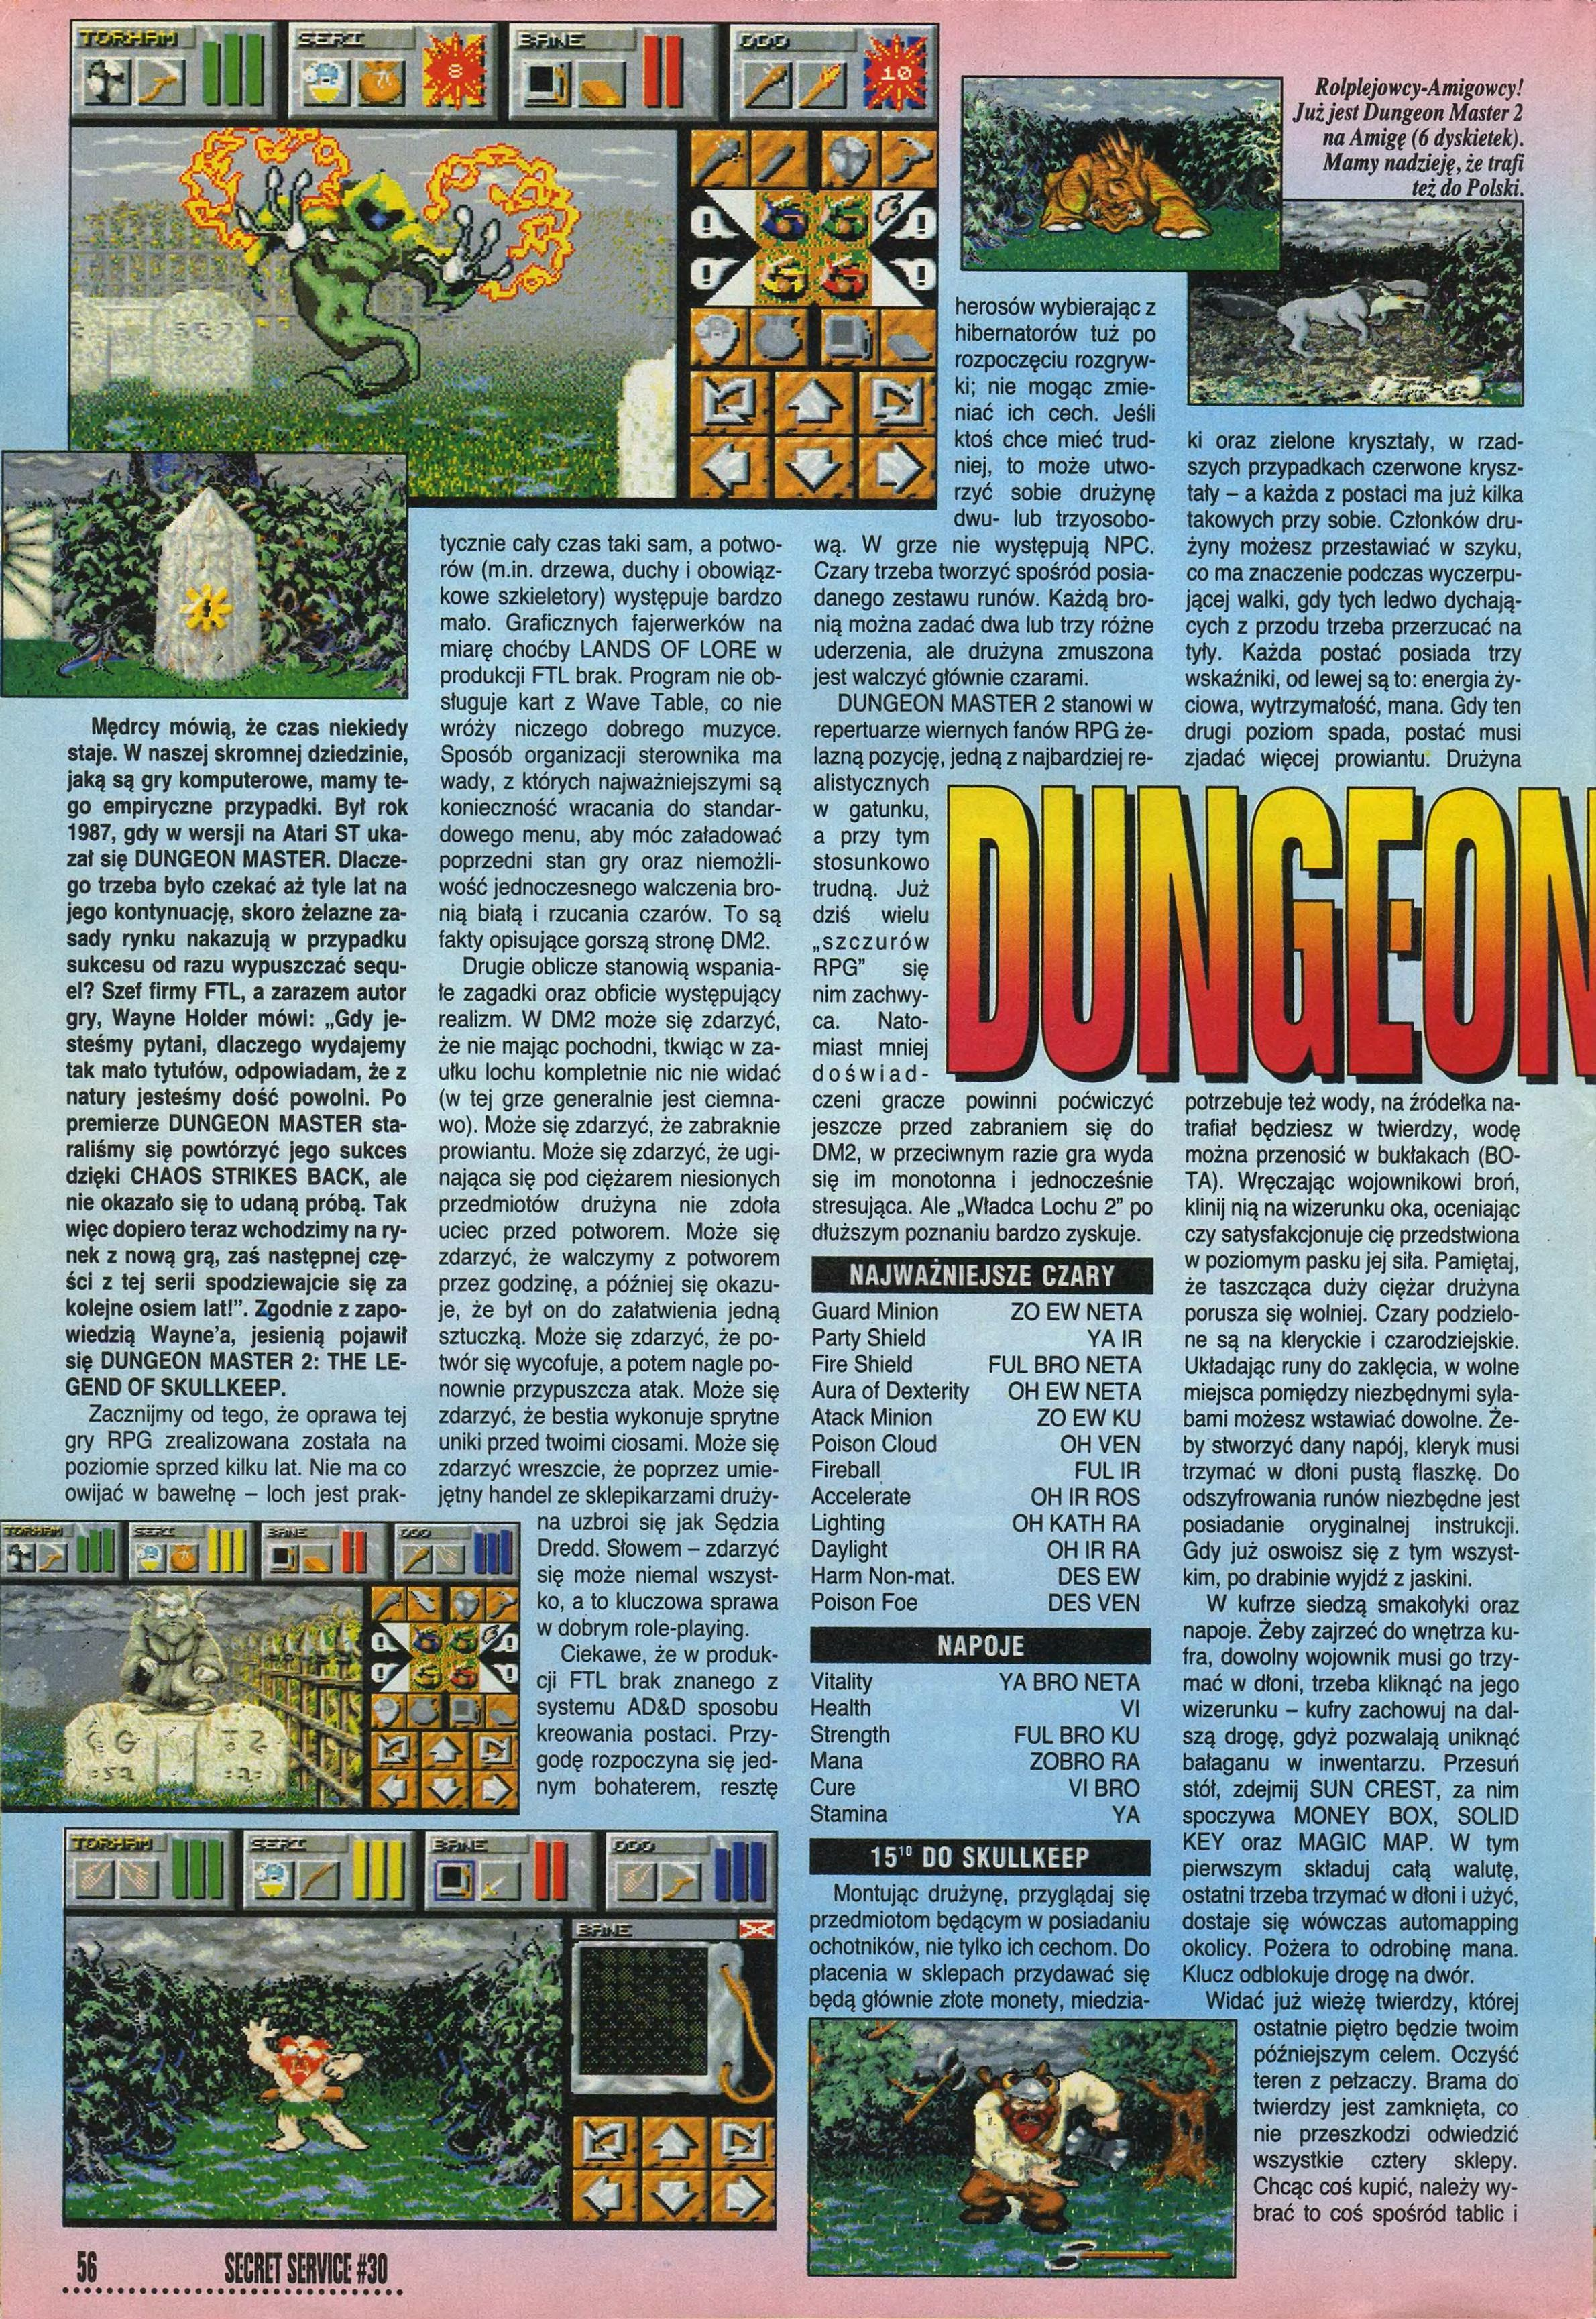 Dungeon Master II for PC-Amiga-Macintosh Review published in Polish magazine 'Secret Service', Issue #30 December 1995, Page 56